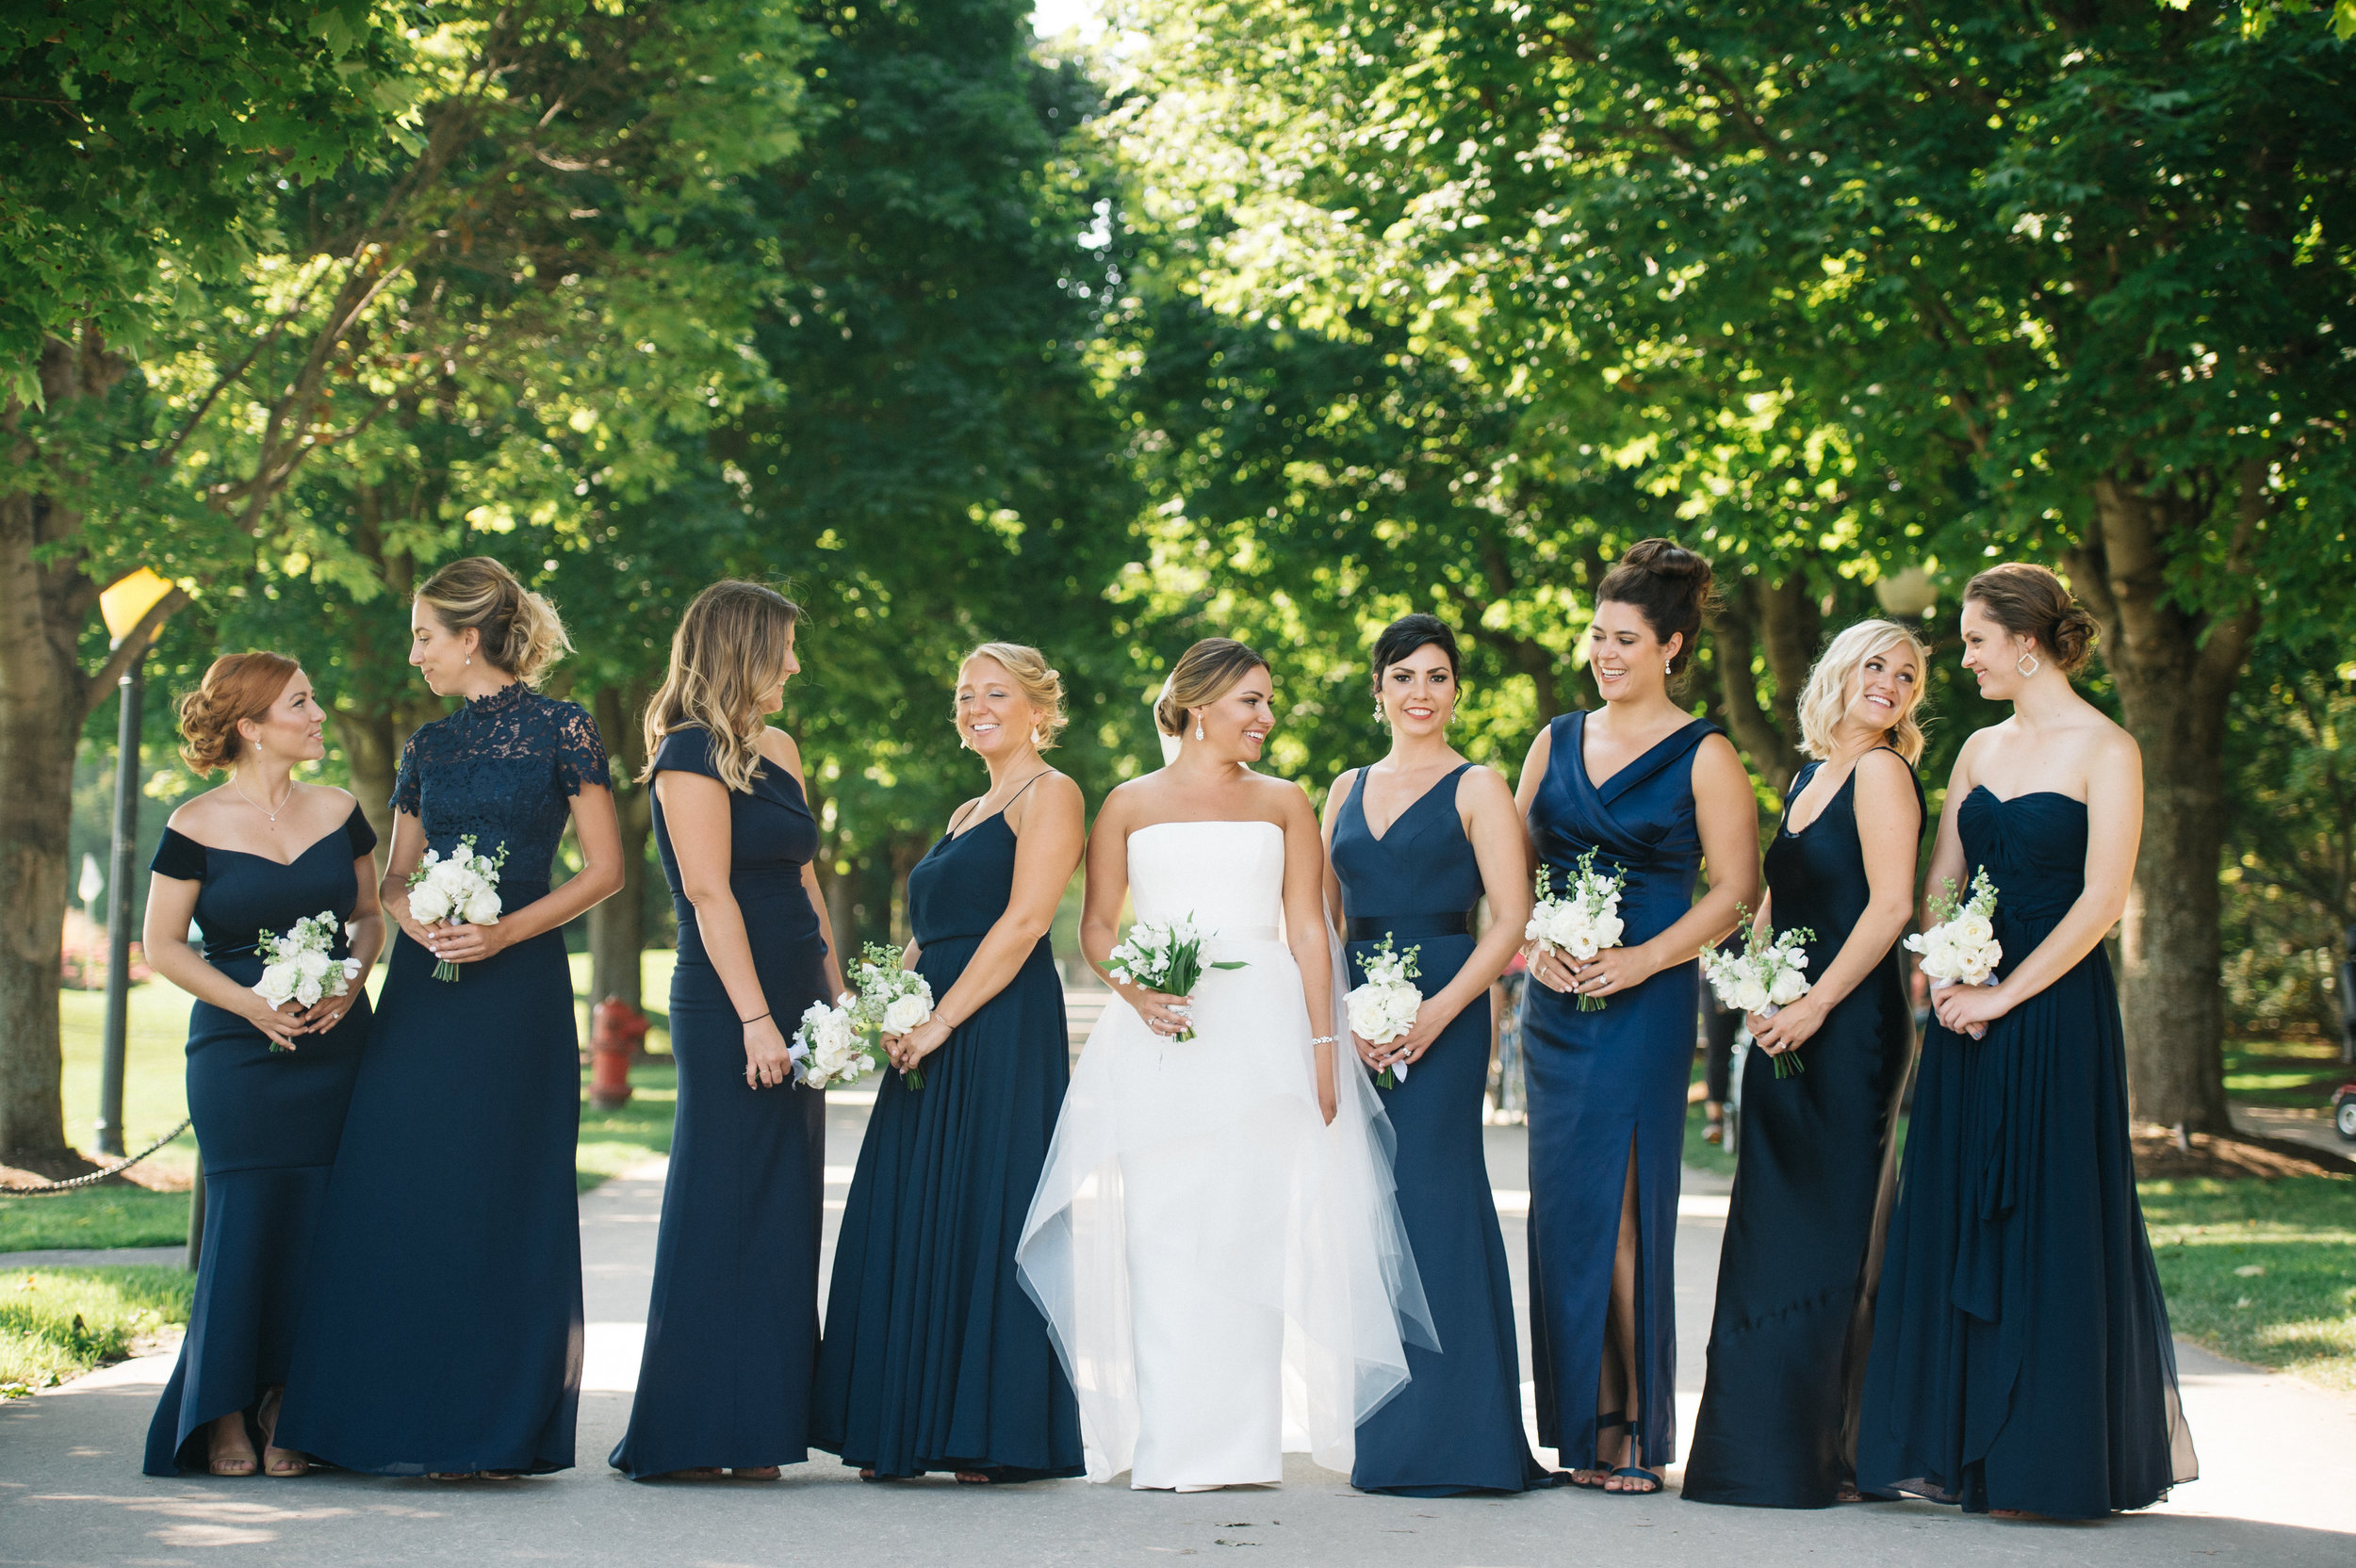 custom wedding planners michigan event design paper goods florals nautical mackinac island sparkler exit bridal party bridesmaids navy